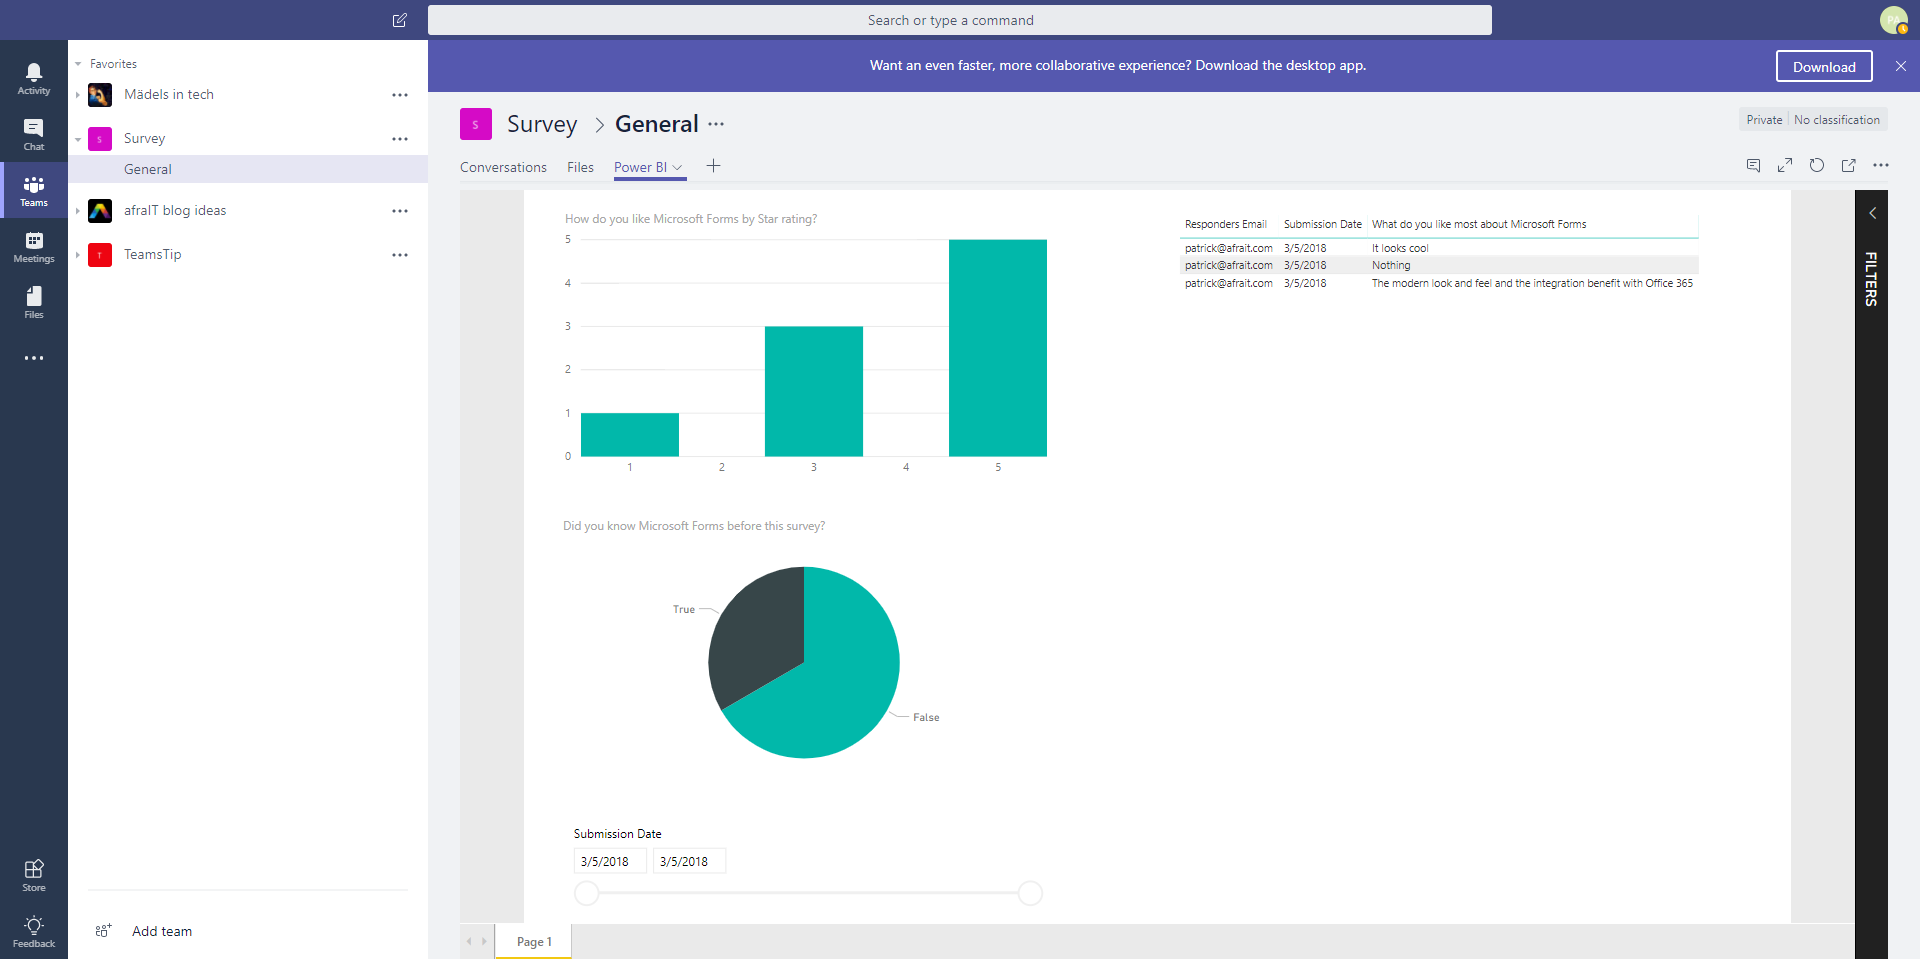 How to use 7 tools to create 1 simple survey in Office 365